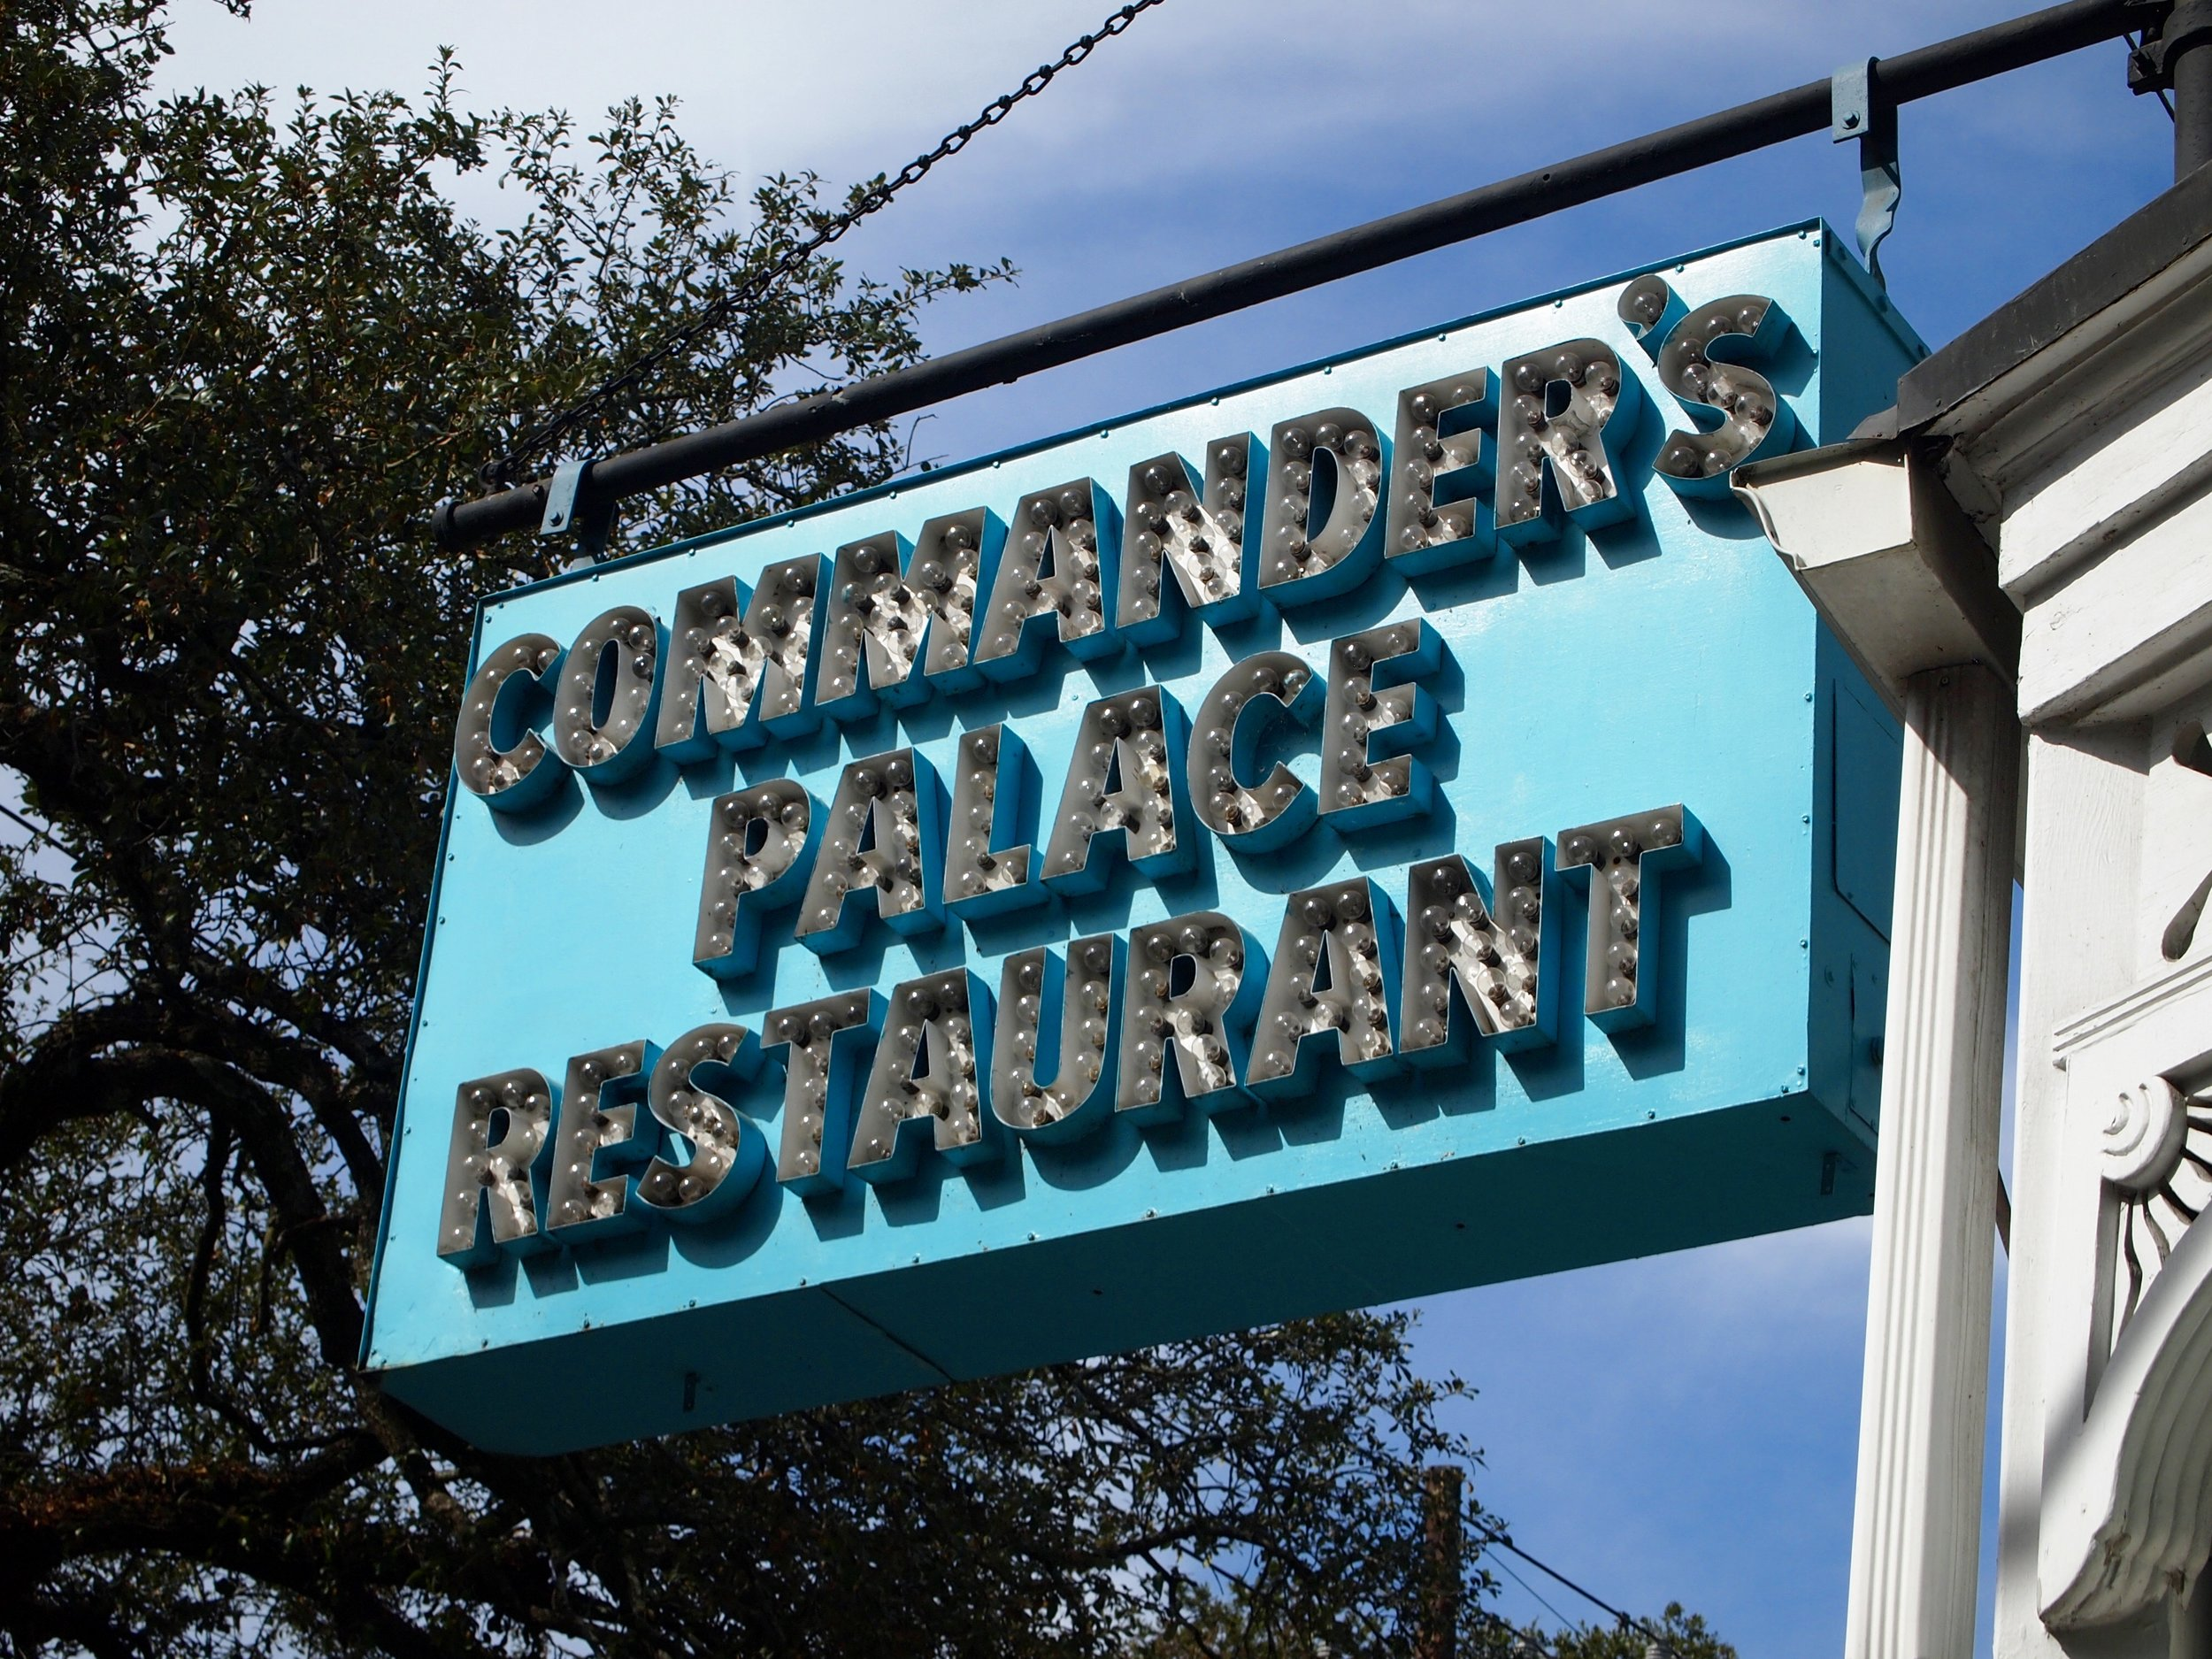 Commander's Palace, Garden District, New Orleans (image by Jacqui Gibson).